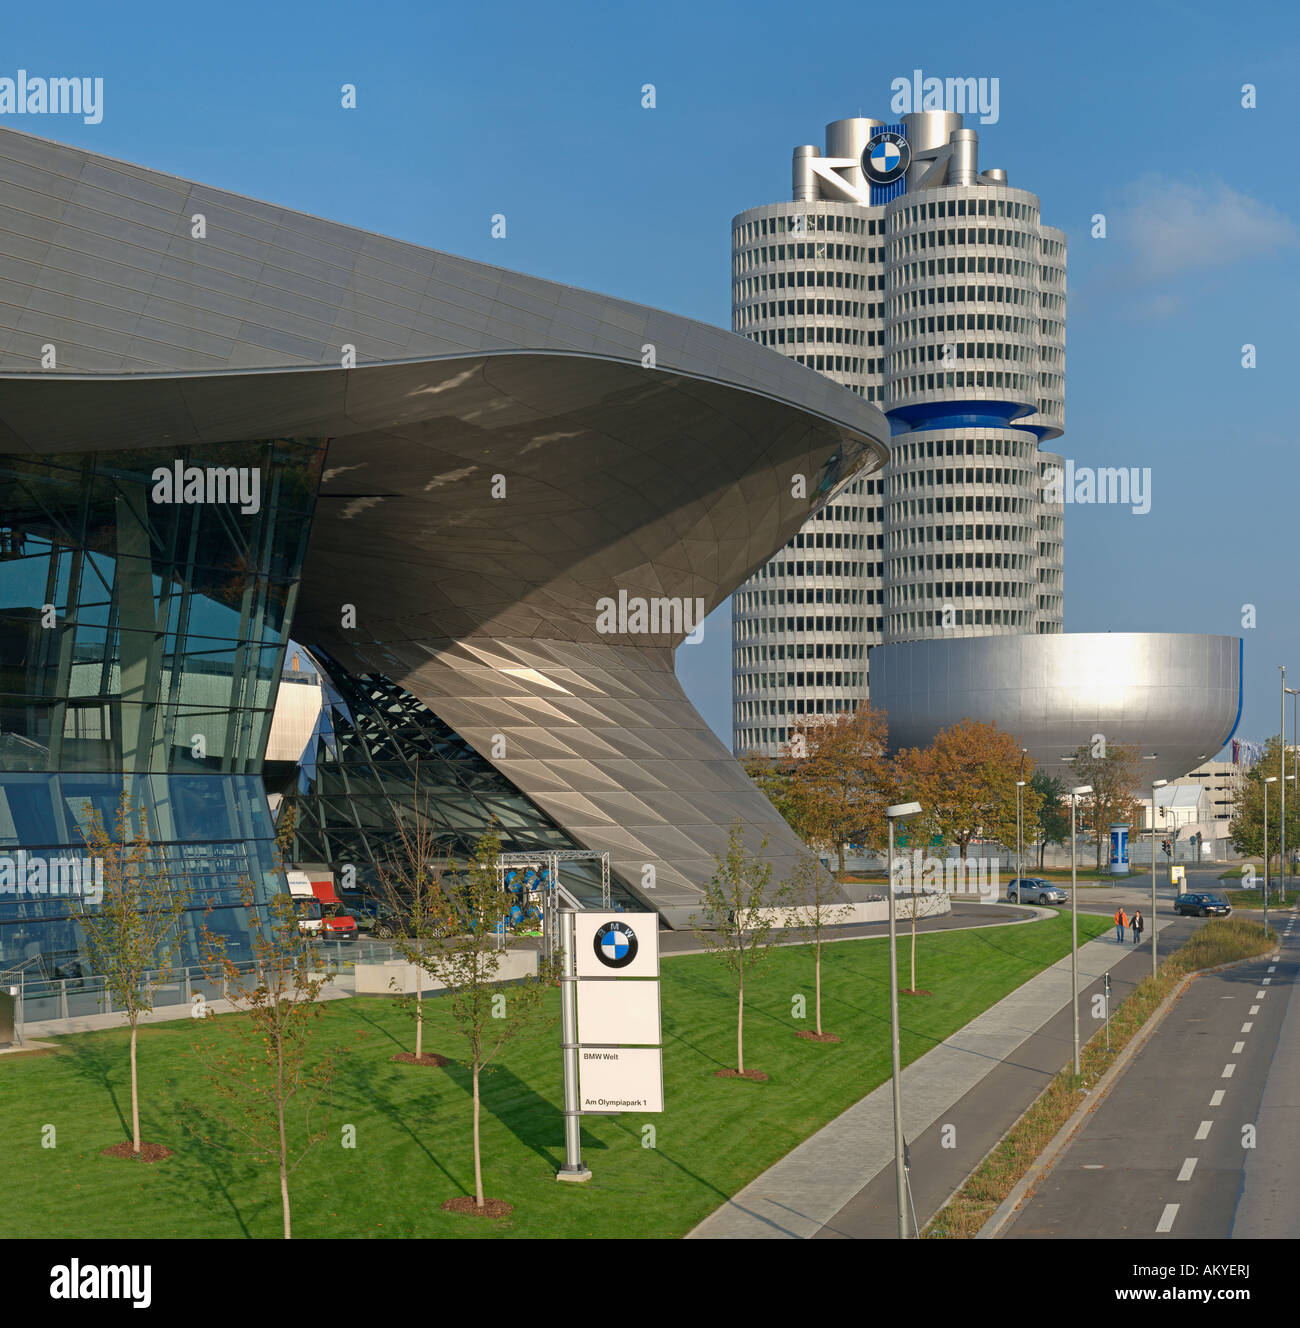 BMW World, event forum and distribution center for BMW cars, Munich, Bavaria, Germany - Stock Image